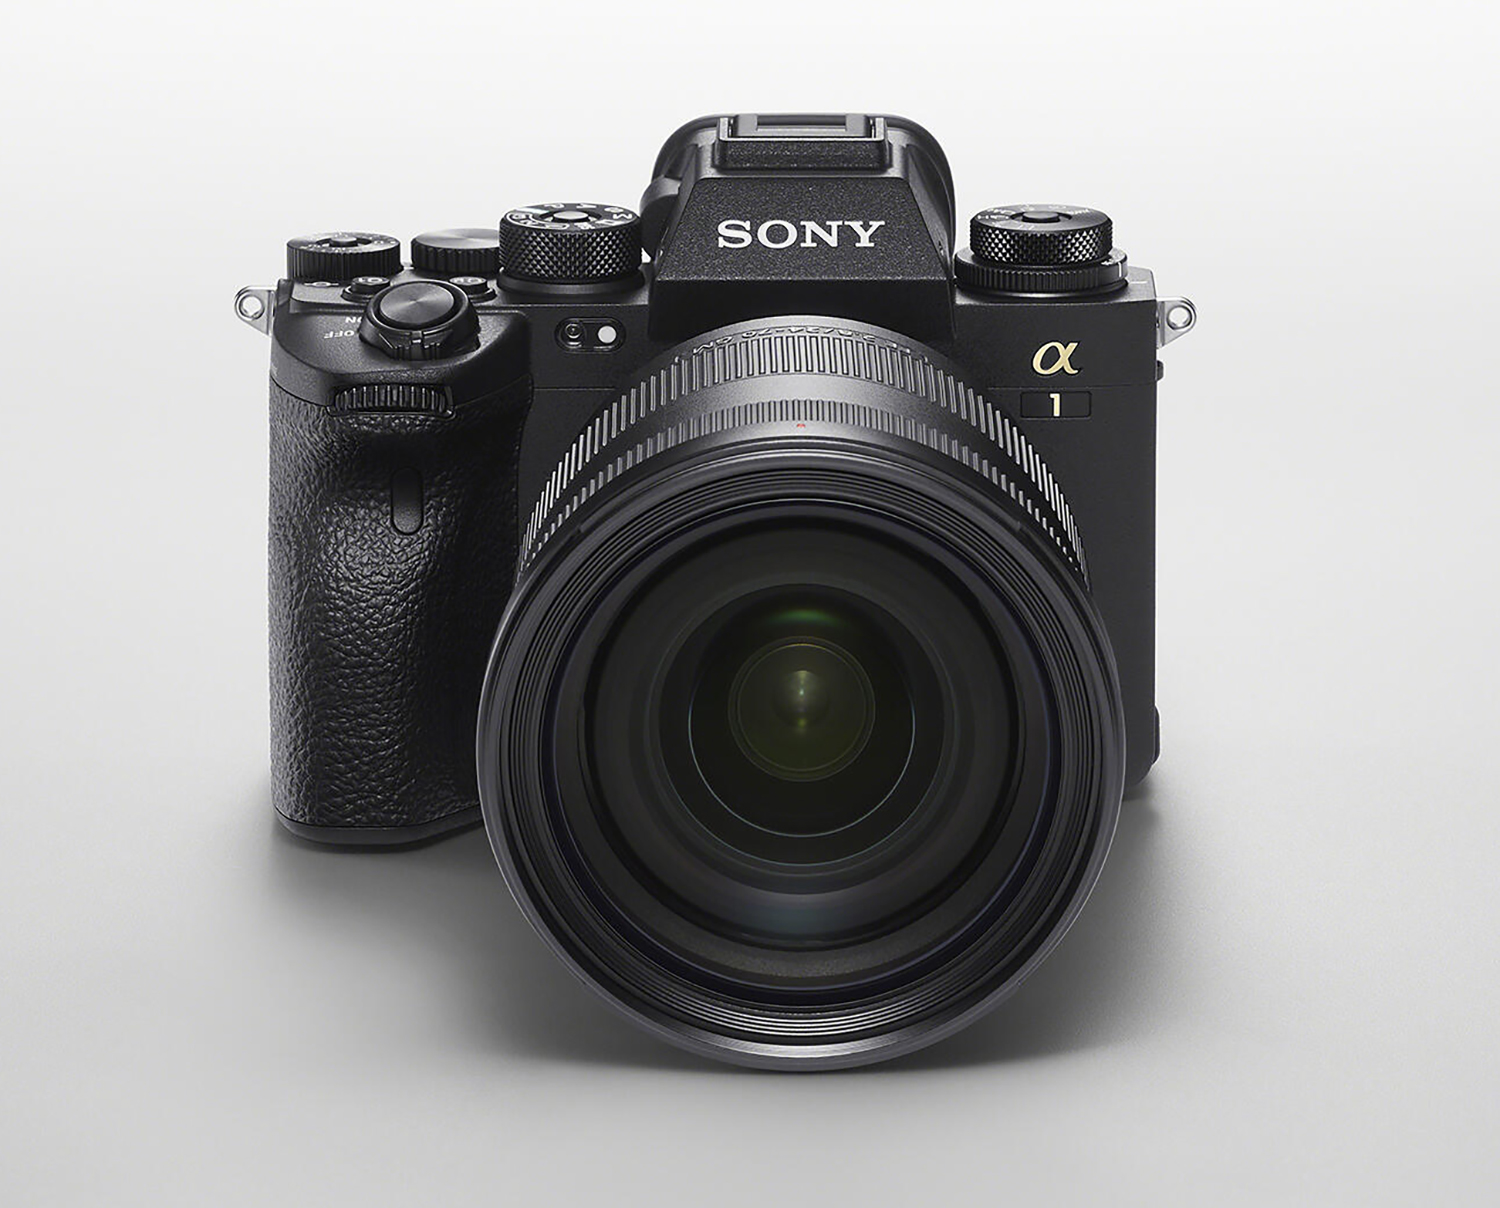 Hero photo of Sony A1 camera